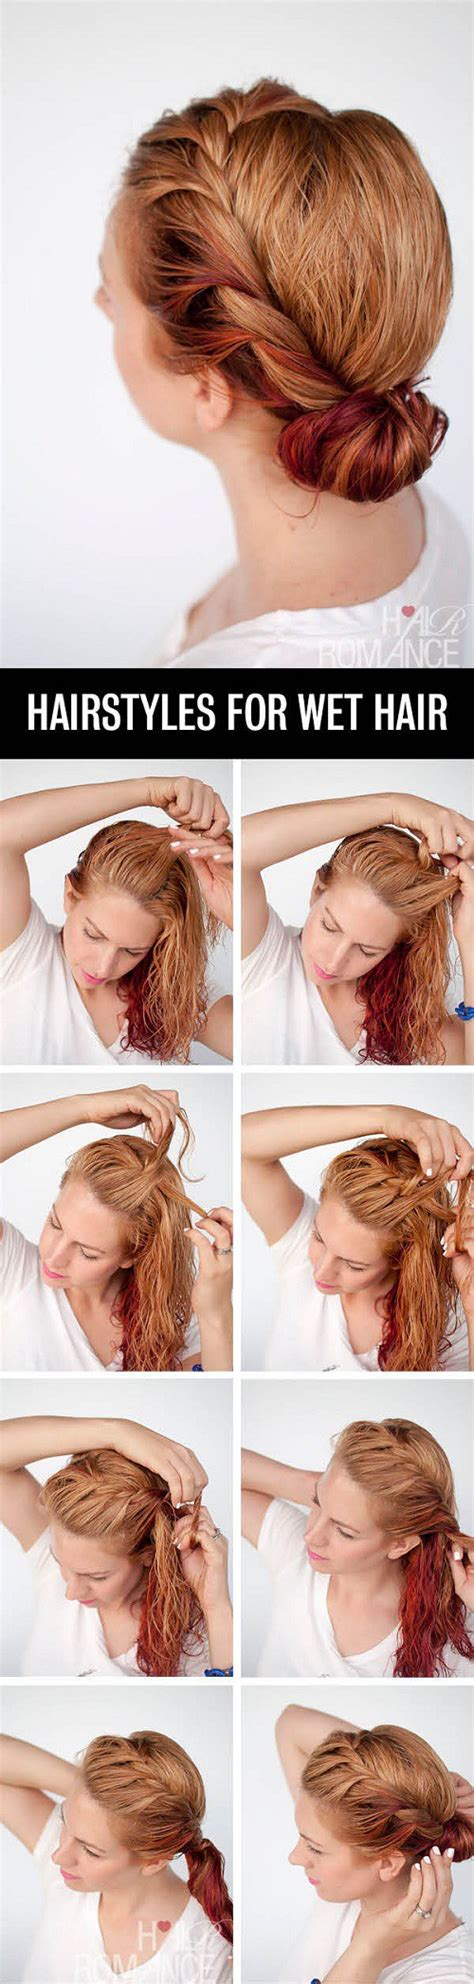 diy hairstyles side bun 17 hair tutorials you can totally diy